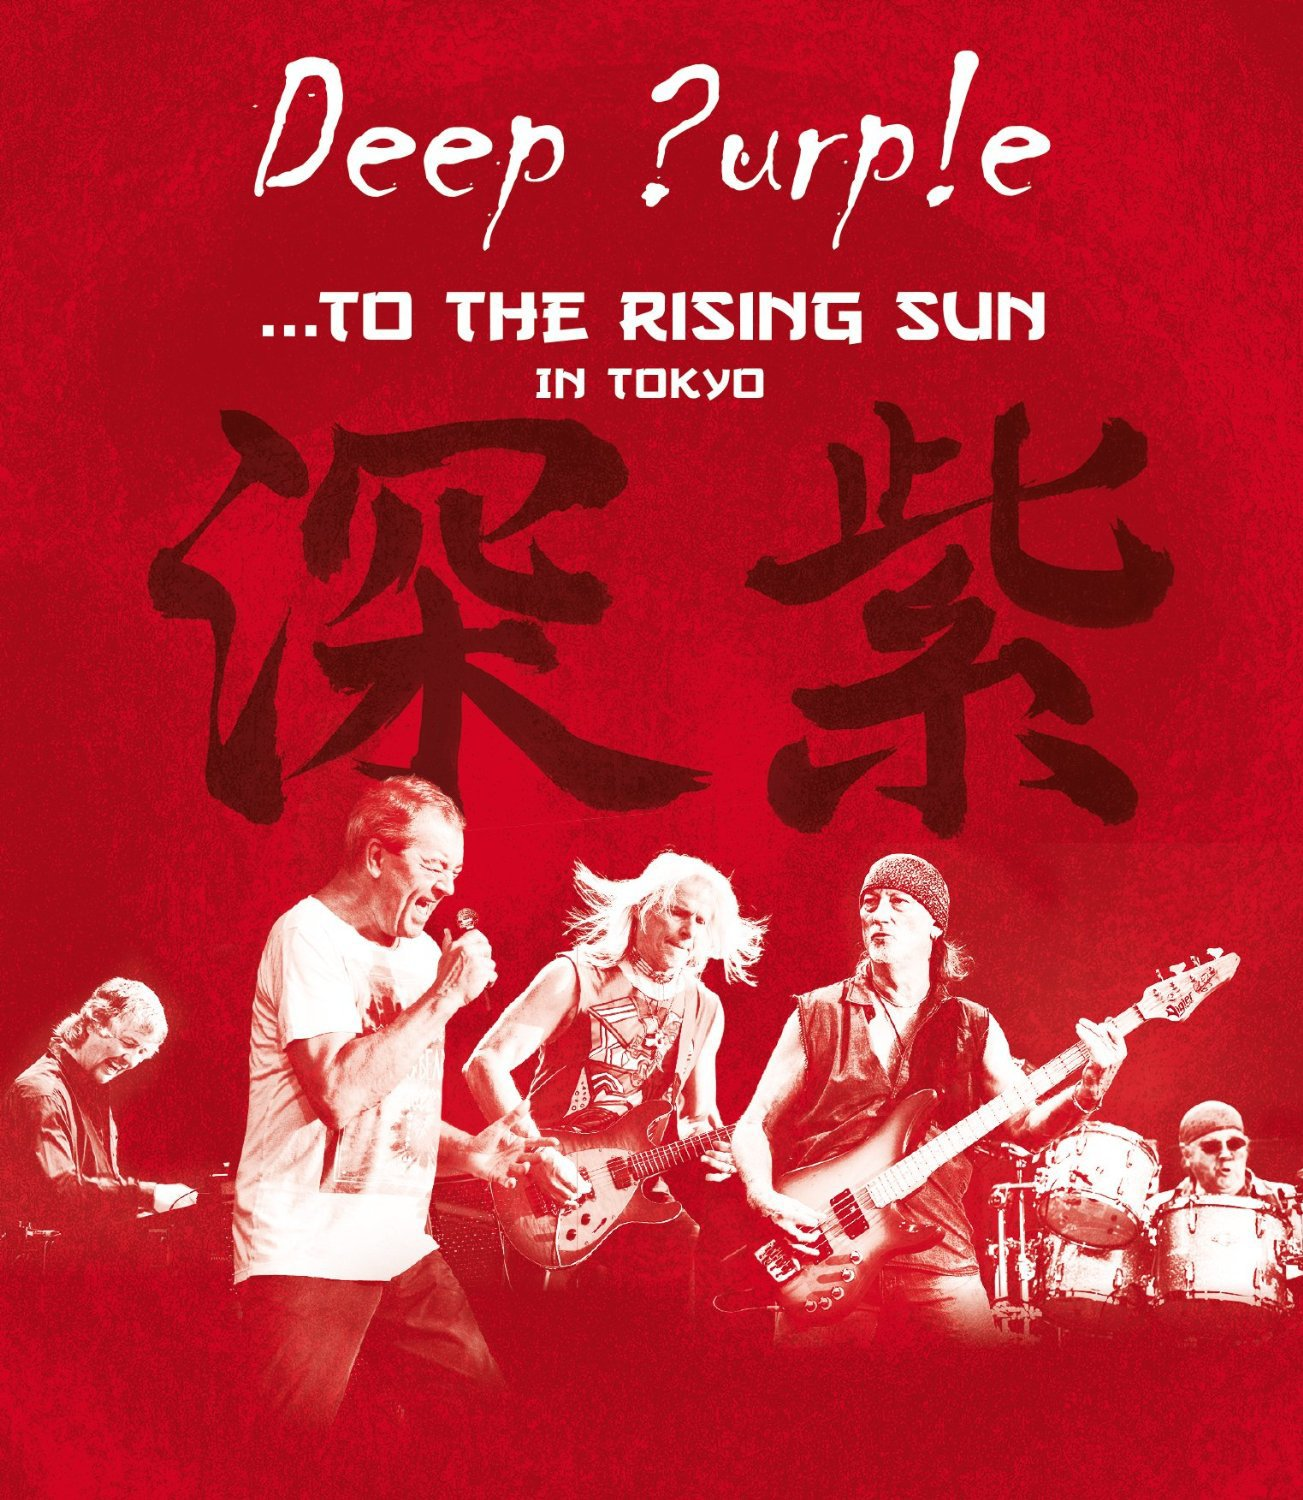 Deep Purple To the Rising Sun in Tokyo (2015) 720p+1080p MBLURAY x264-DEV0